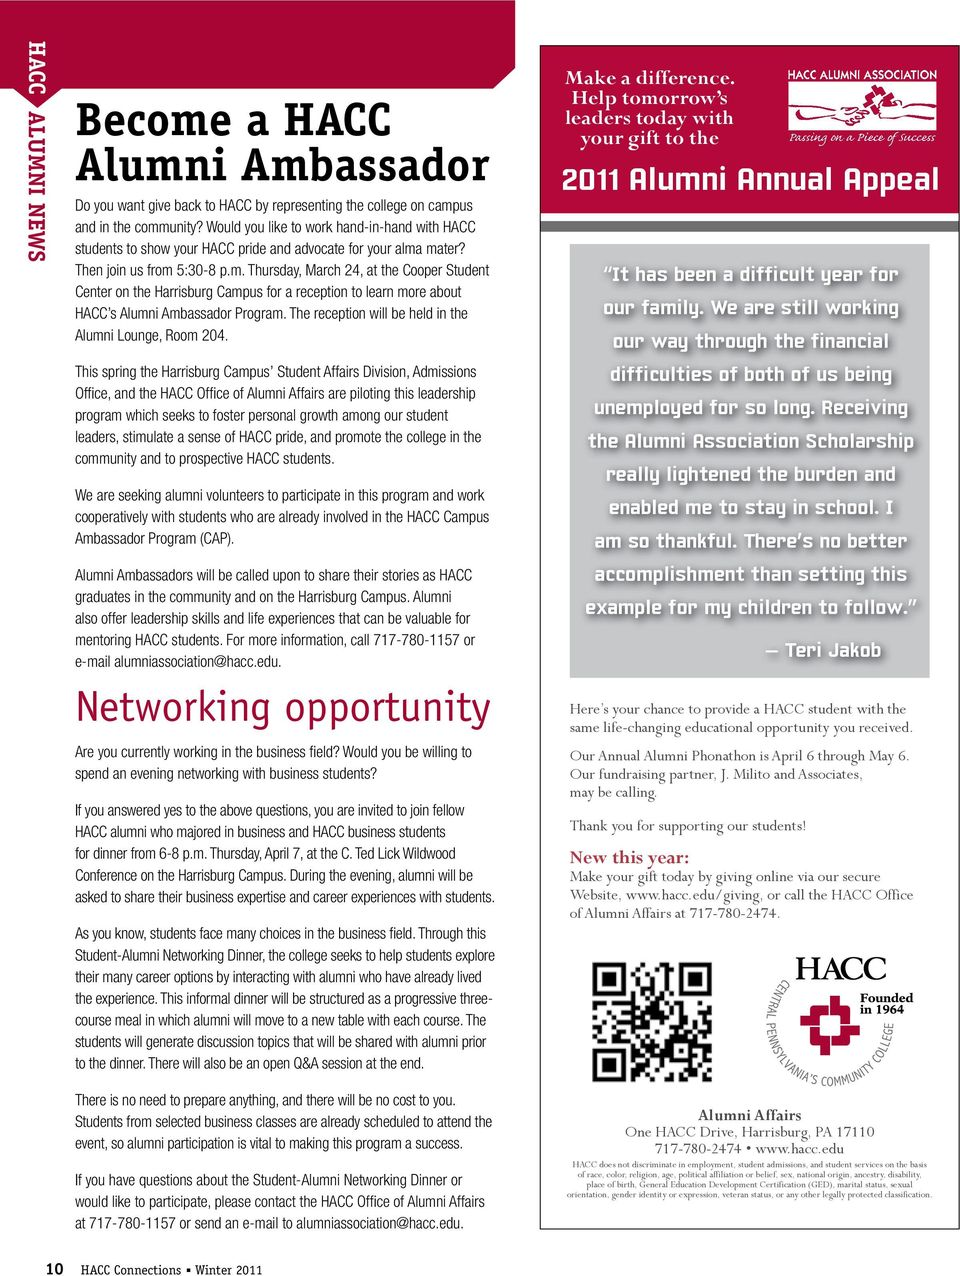 mater? Then join us from 5:30-8 p.m. Thursday, March 24, at the Cooper Student Center on the Harrisburg Campus for a reception to learn more about HACC s Alumni Ambassador Program.